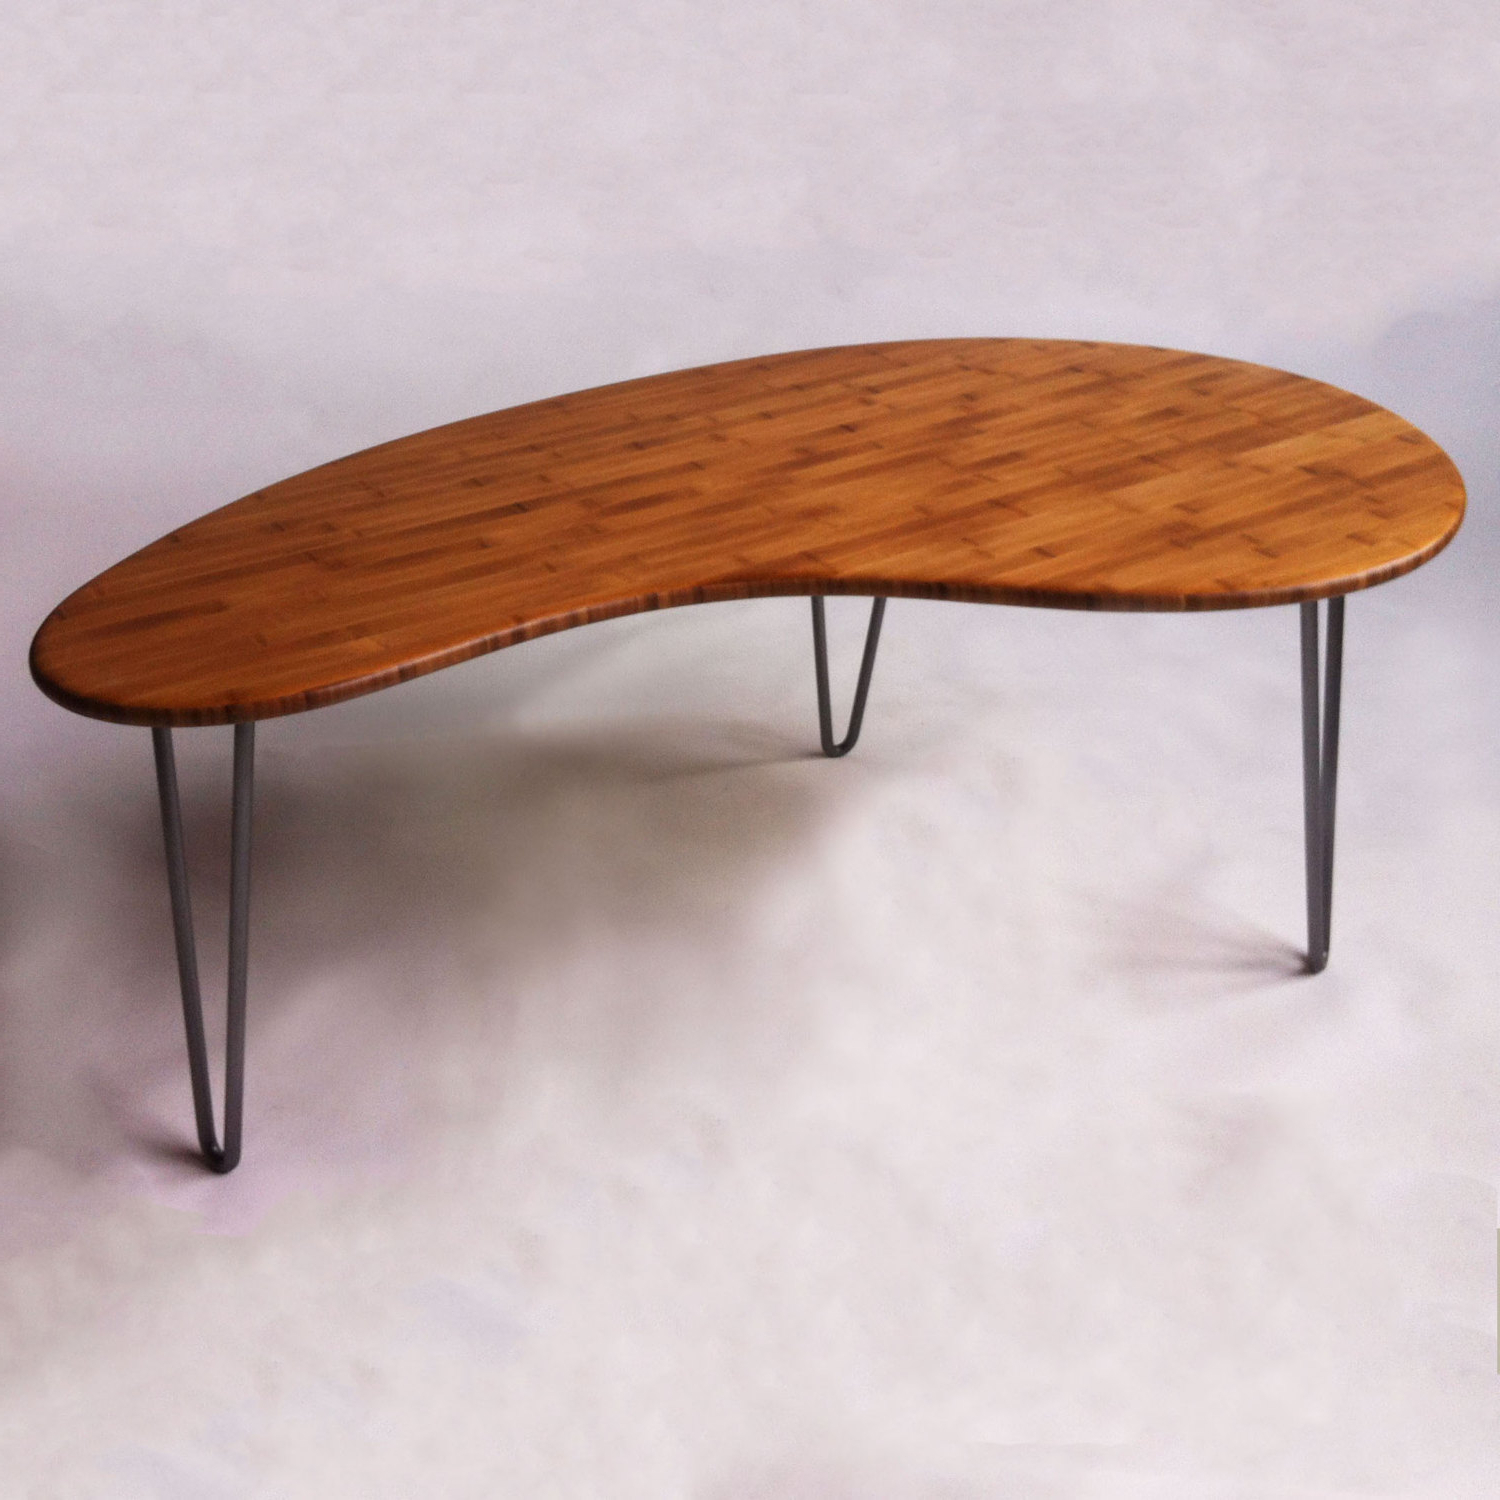 Furniture: Alluring Kidney Shaped Coffee Table With Futuristic Regarding Well Liked Jelly Bean Coffee Tables (View 7 of 20)